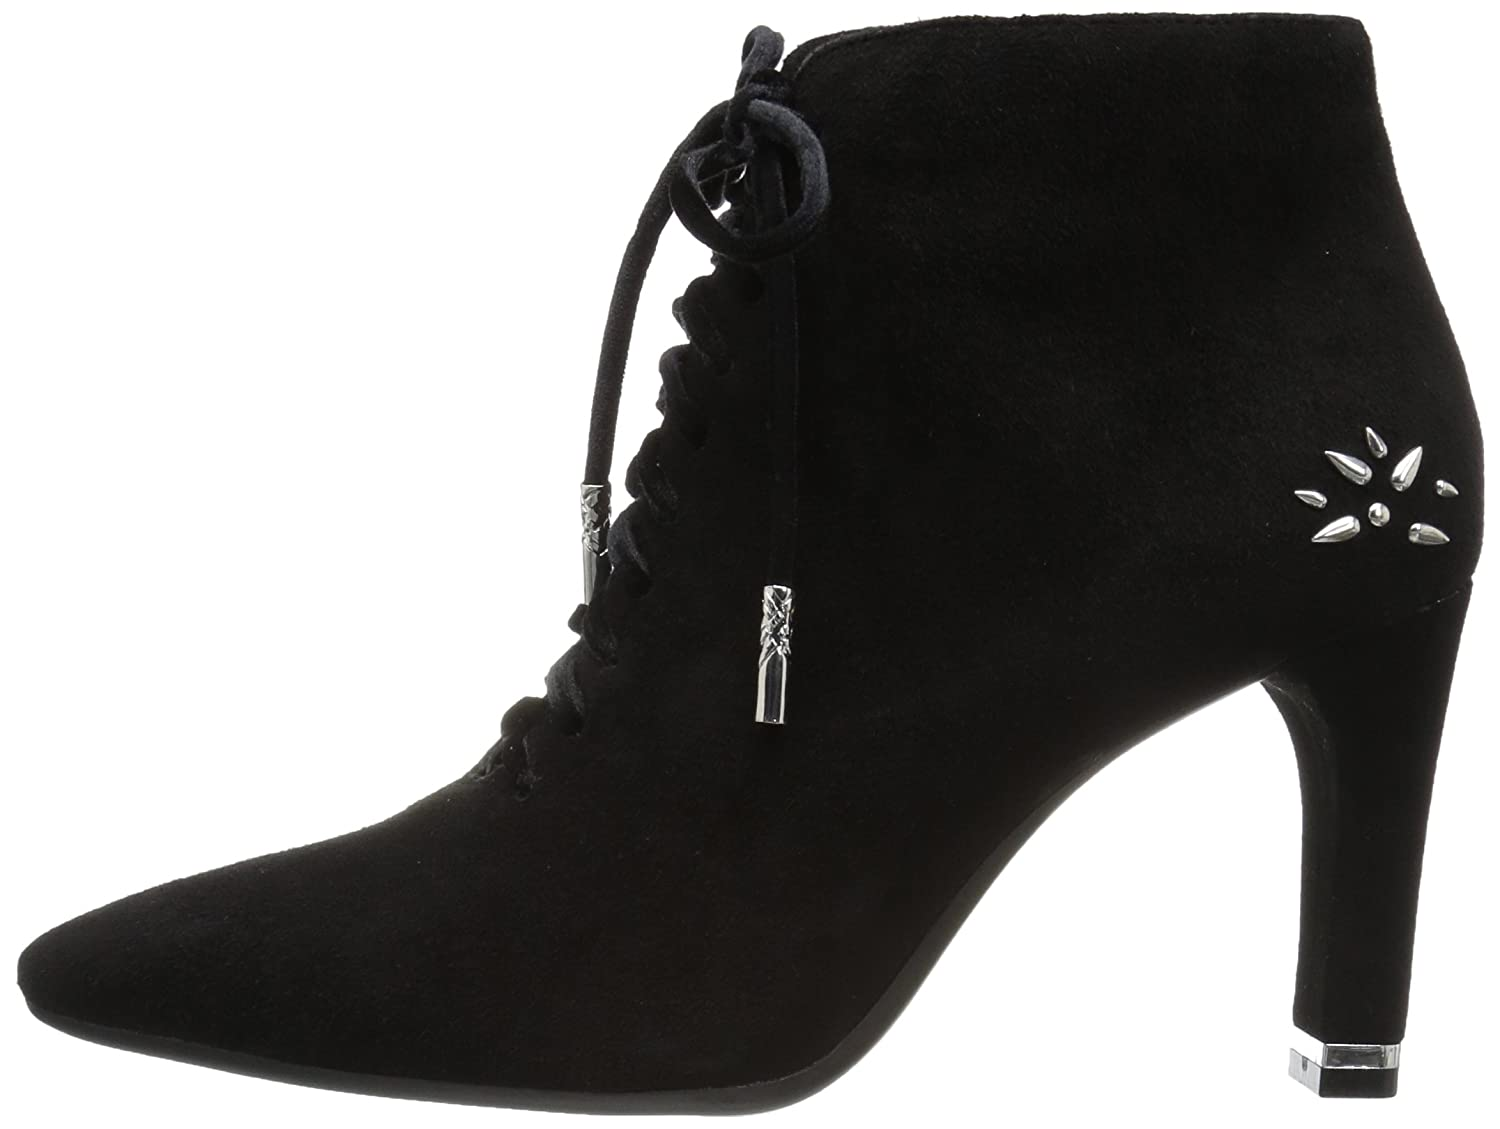 Aerosoles Women's Tax Bracket Ankle Boot B074GZCJCW 7 B(M) US|Black Suede